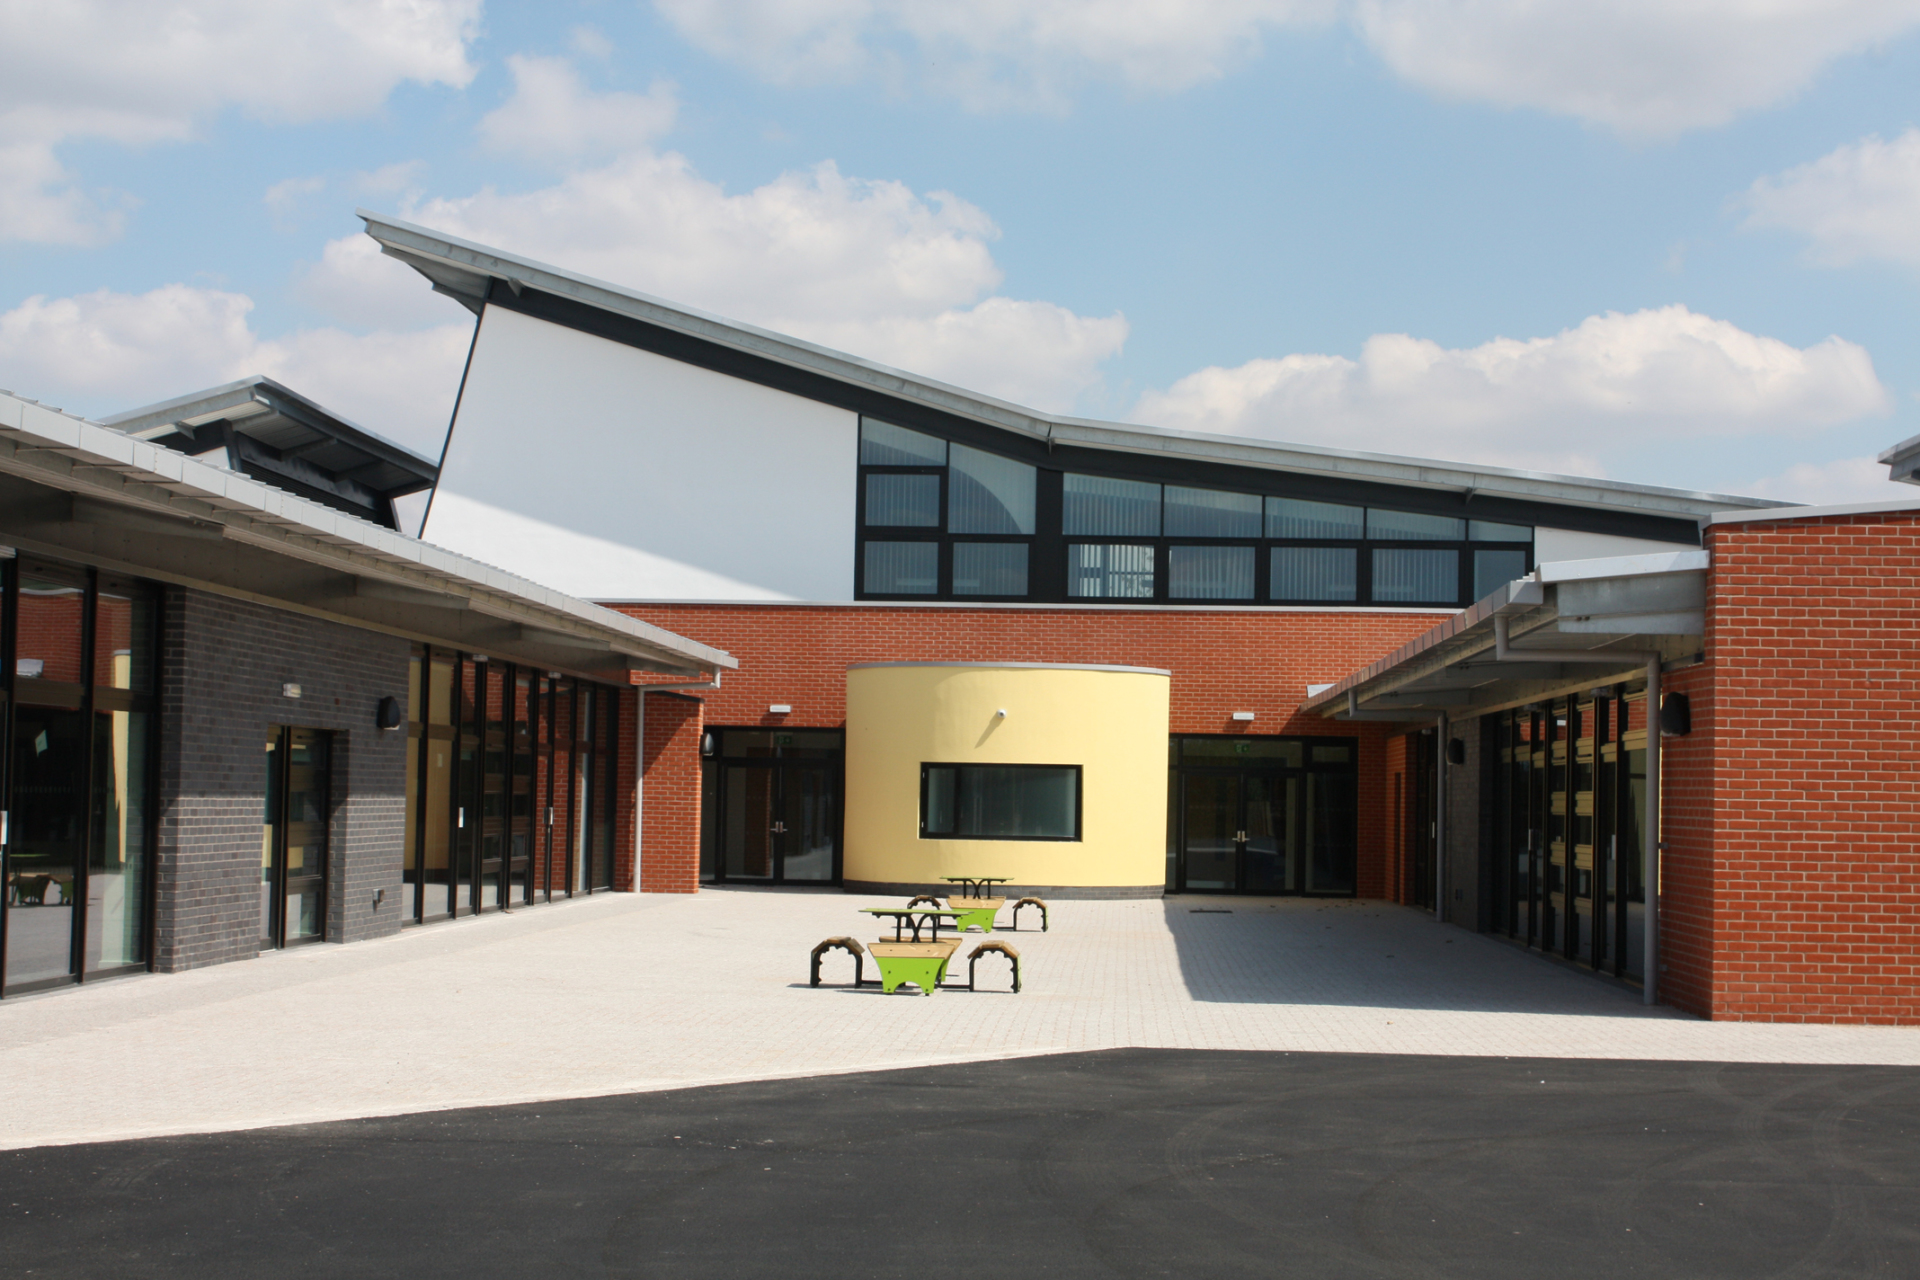 Primary school as part of regeneration of Solihull